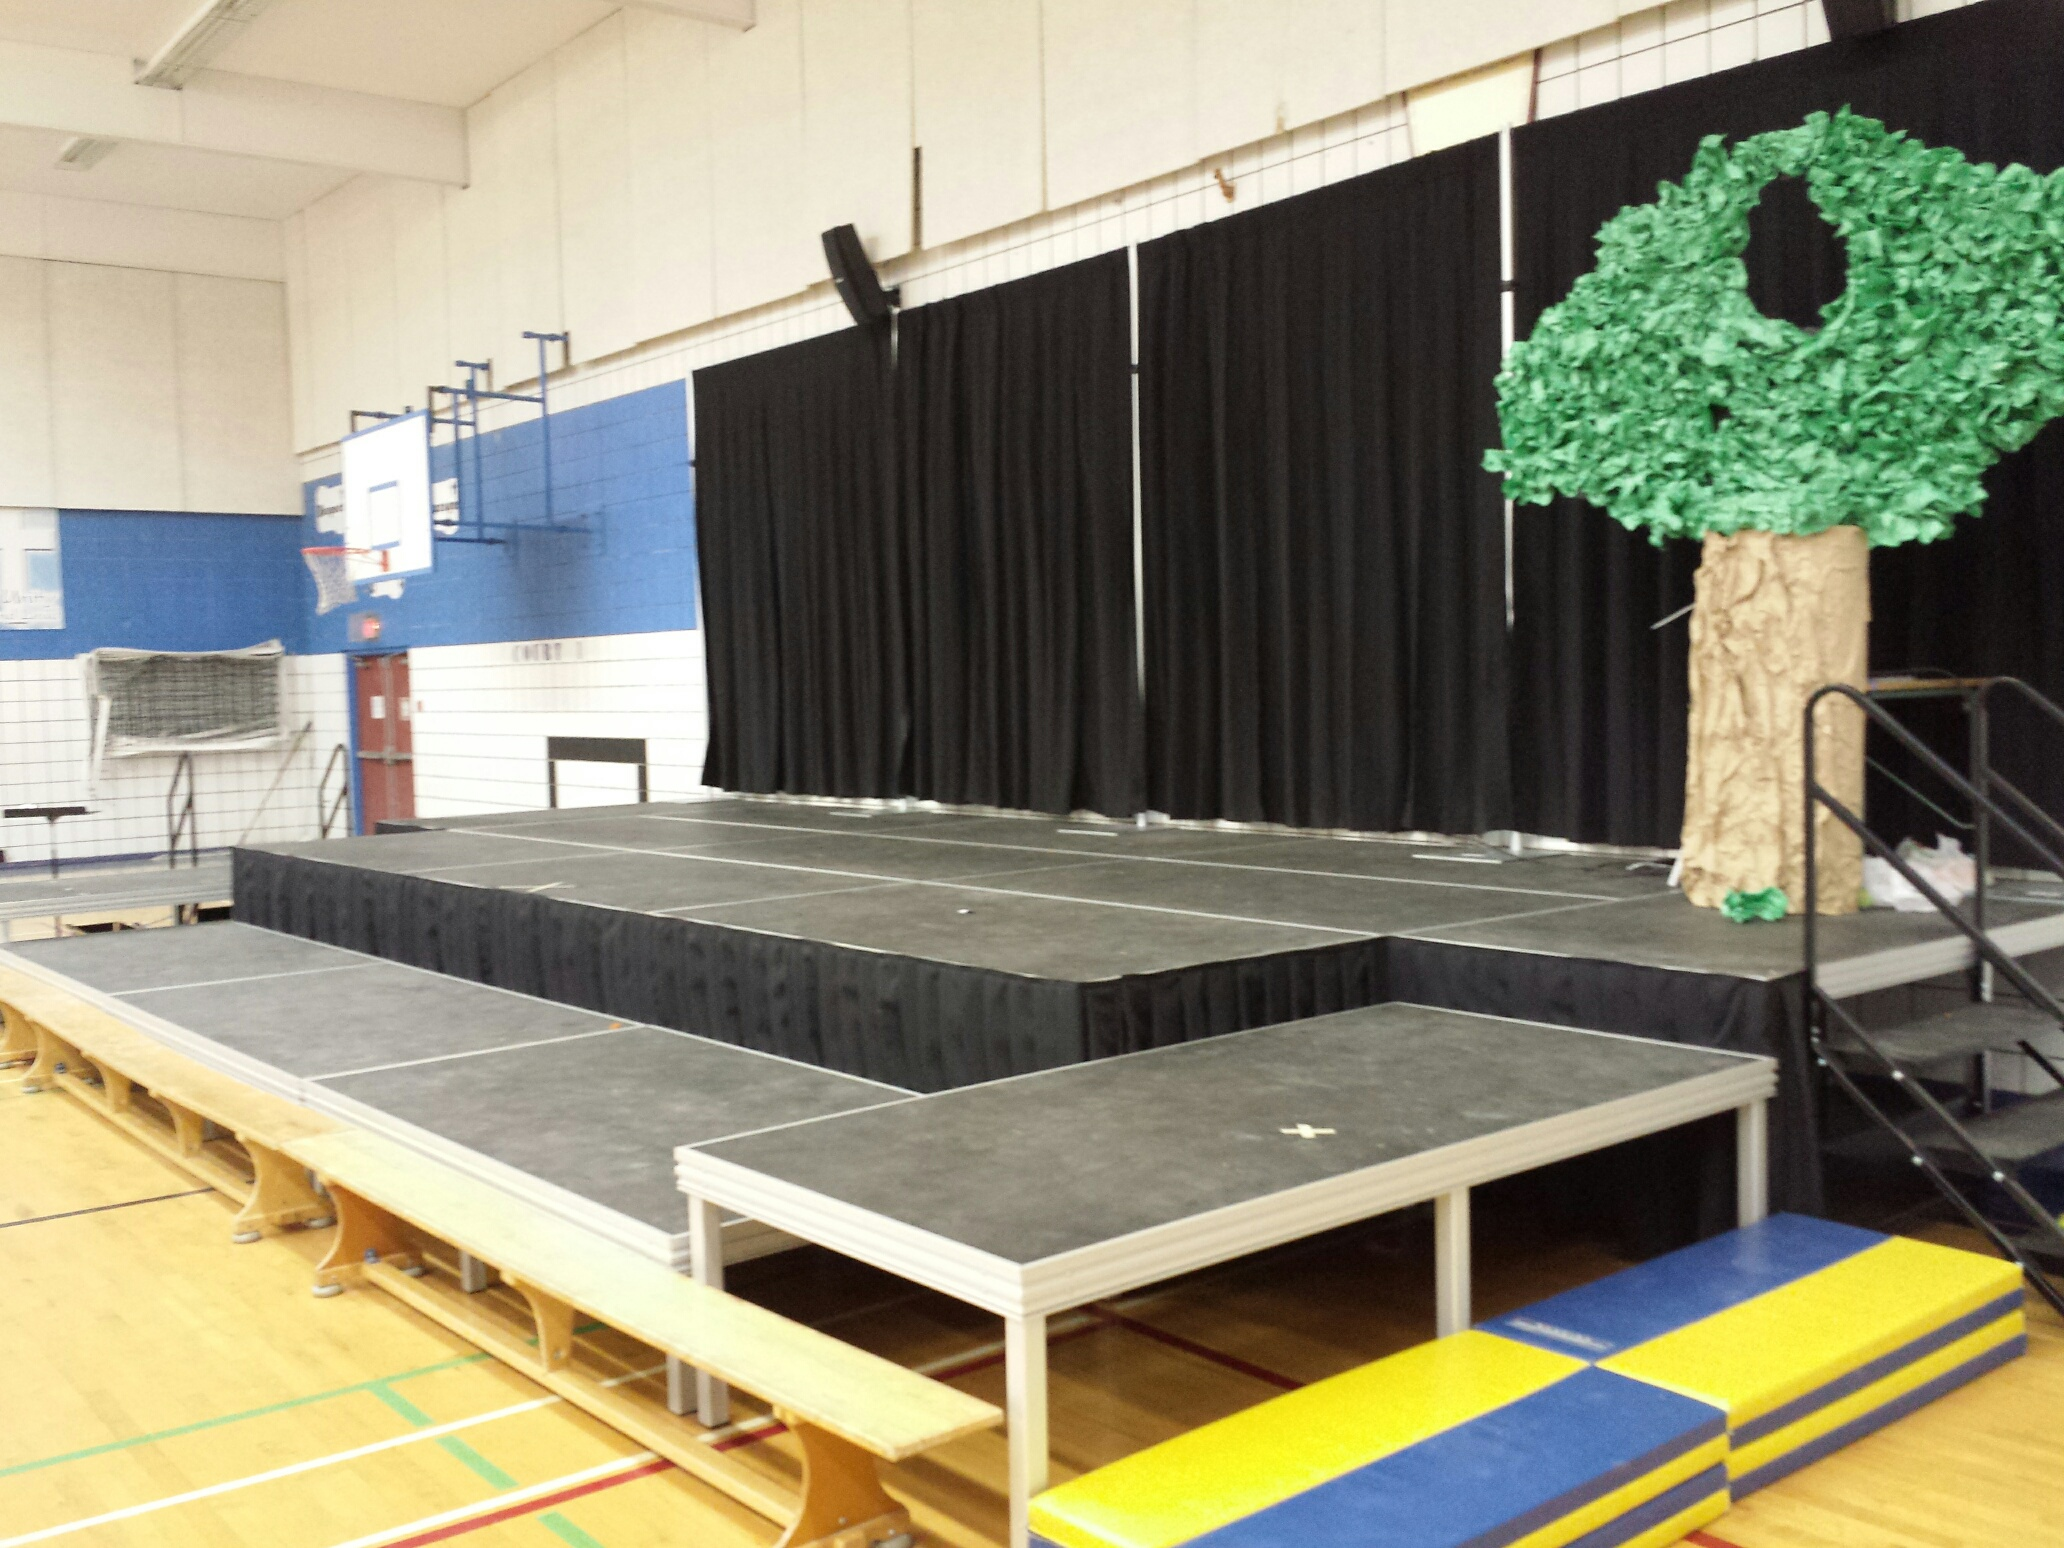 Multi level stage in school